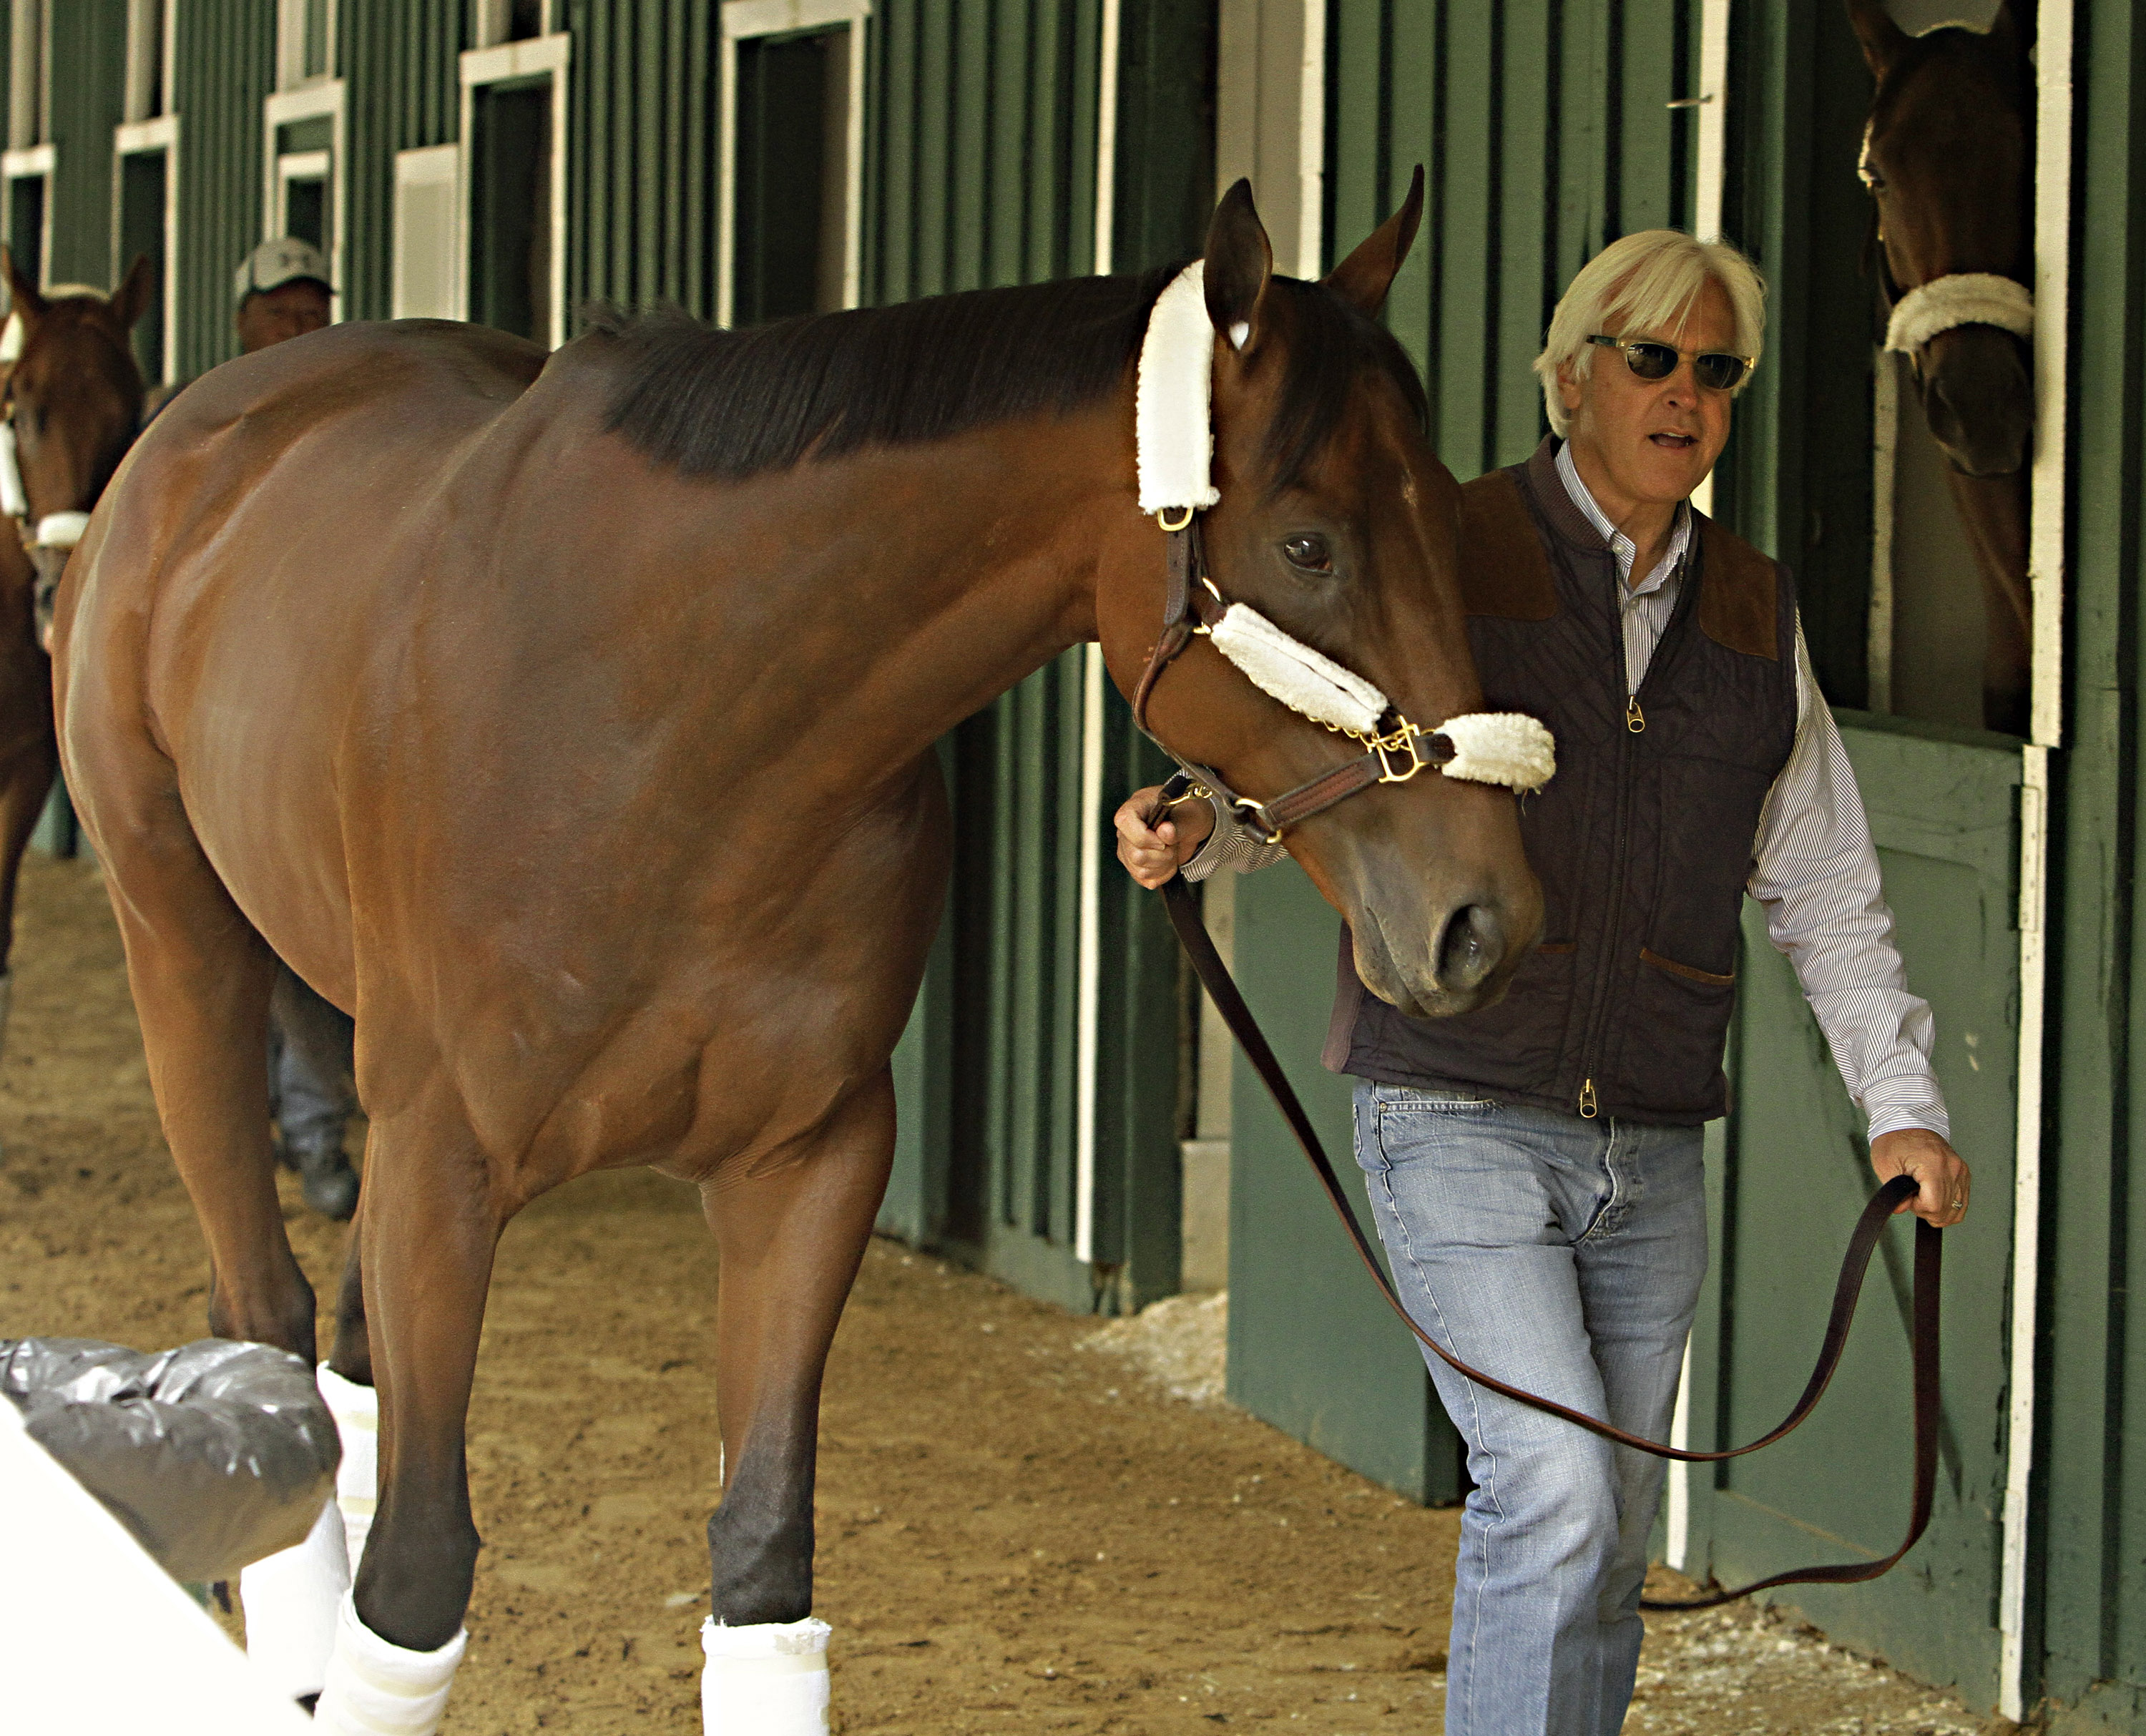 Kentucky Derby winner American Pharoah is held by trainer Bob Baffert at the stakes barn at Pimlico Race Course in Baltimore, Wednesday, May 13, 2015. The Preakness Stakes horse race is Saturday, May 16.(AP Photo/Garry Jones)